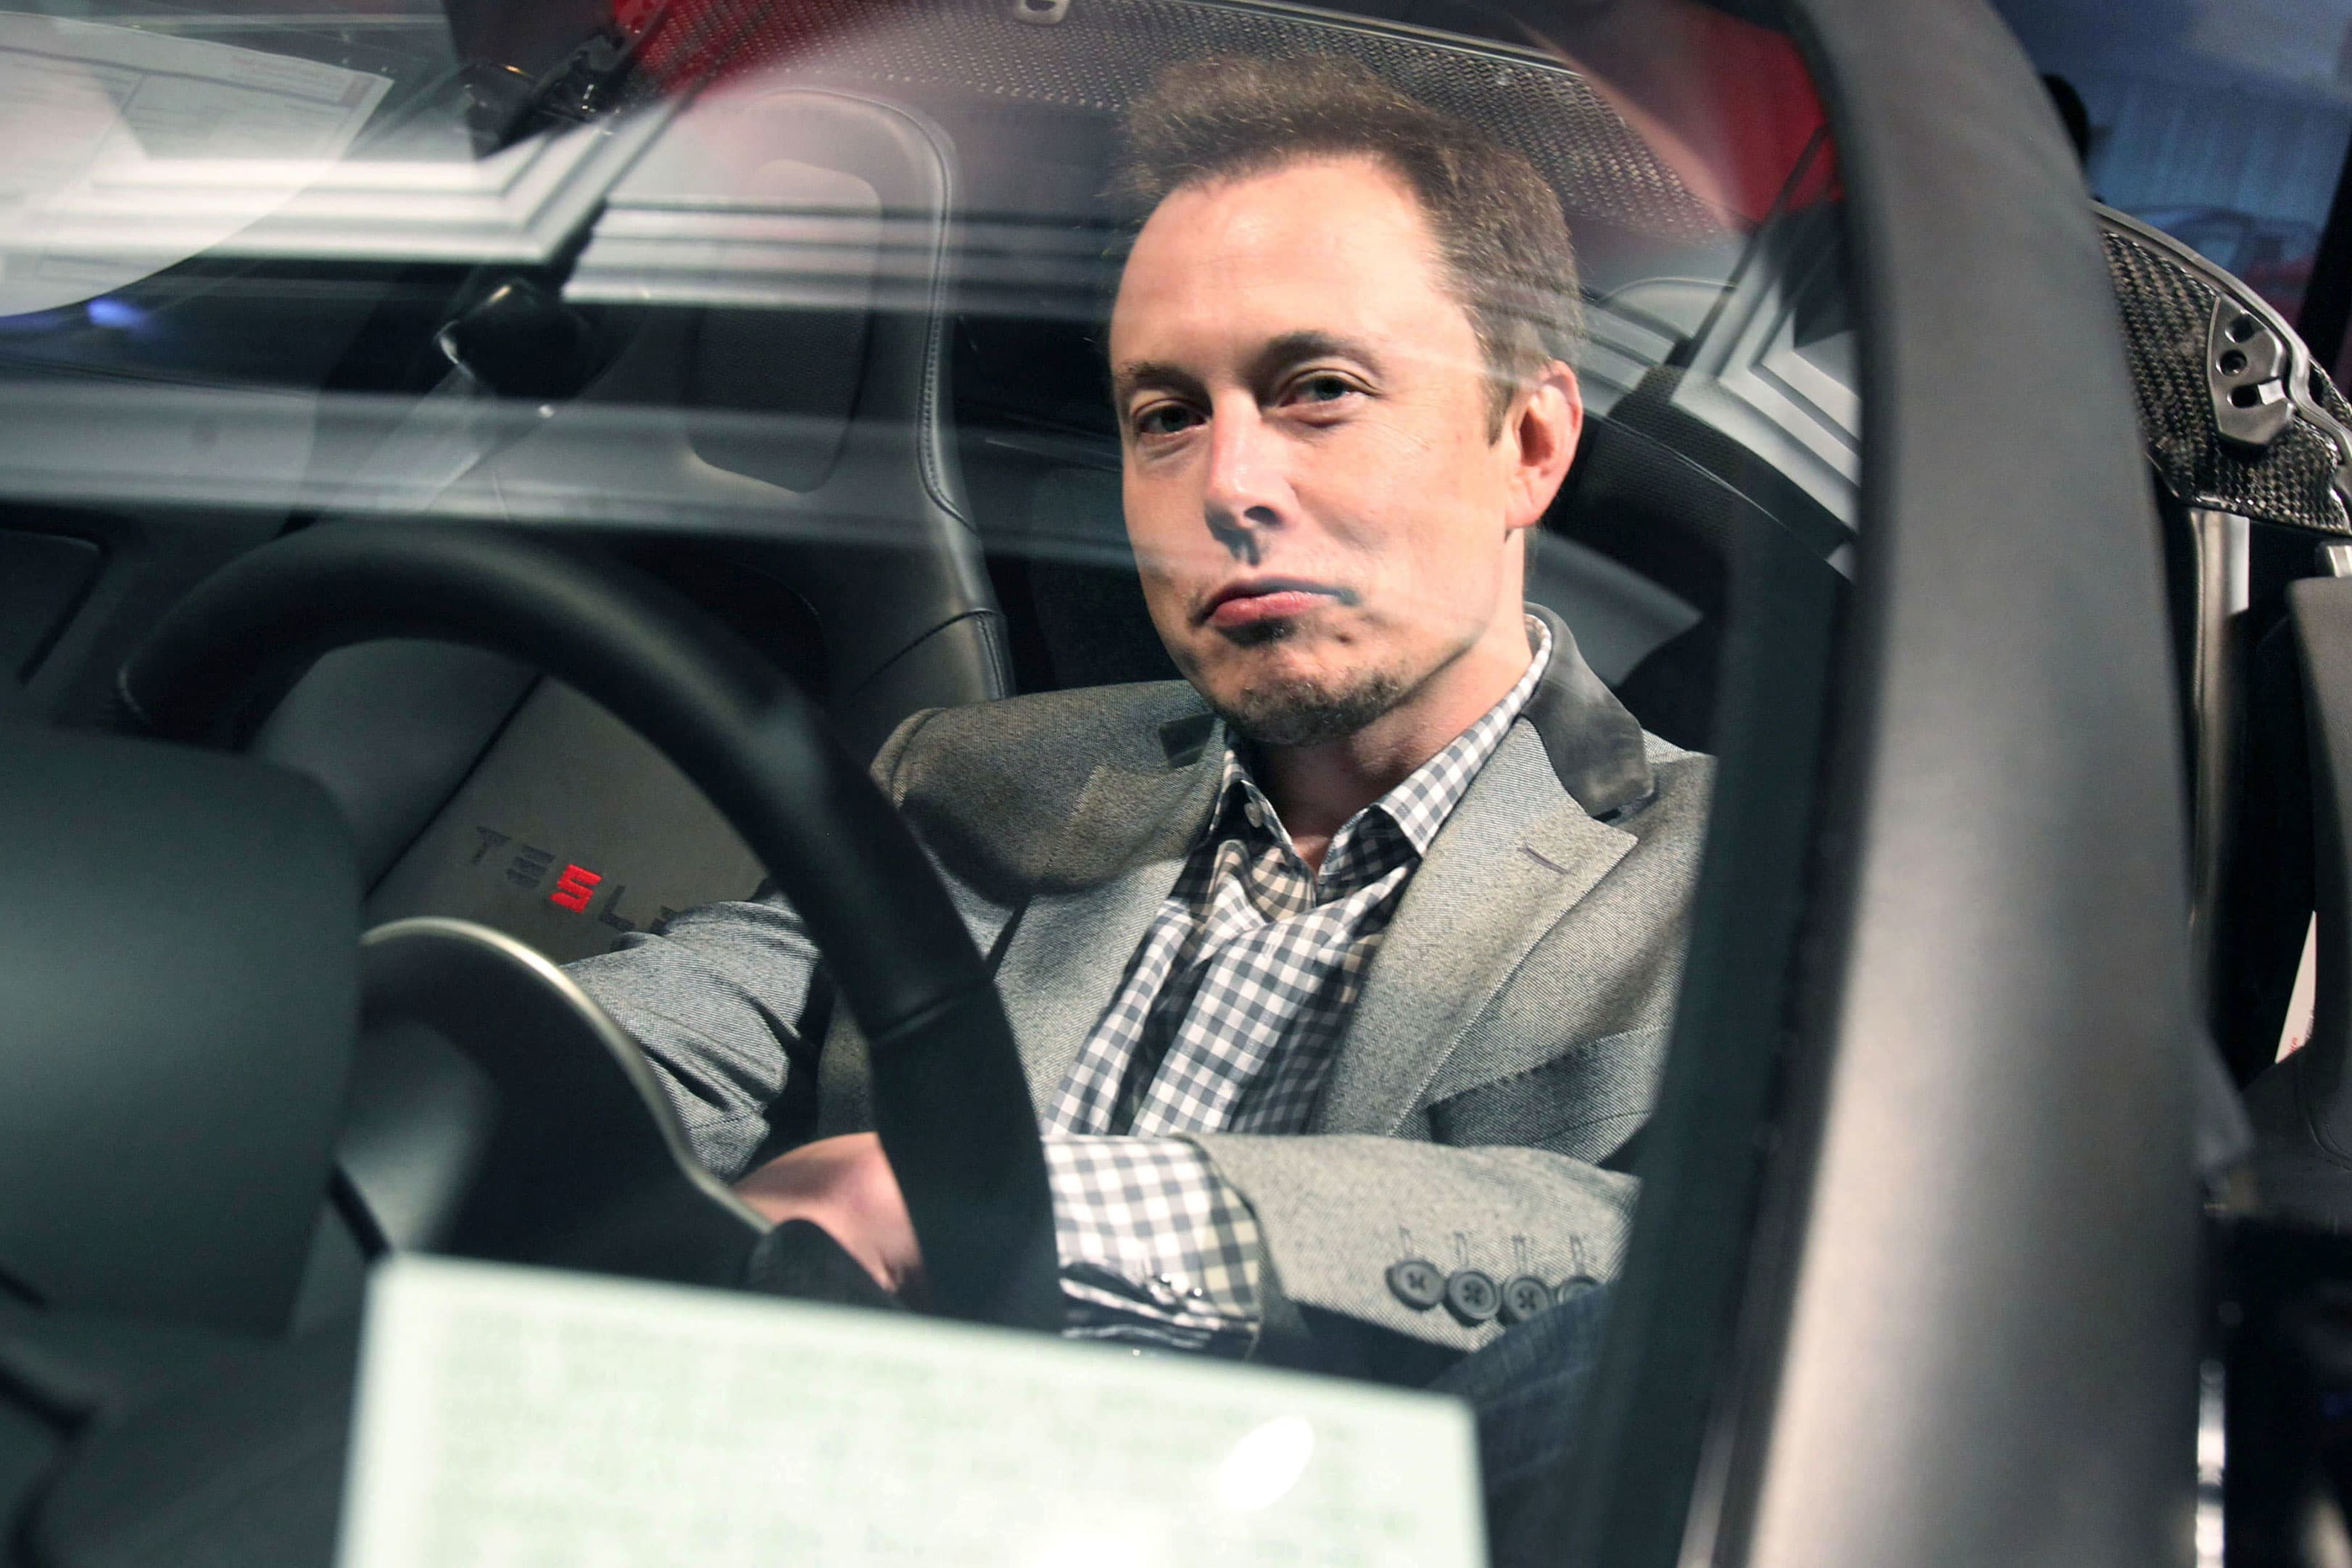 Musk Tesla The Elon Musk Tesla Will Have All Its Self Driving Car Features By